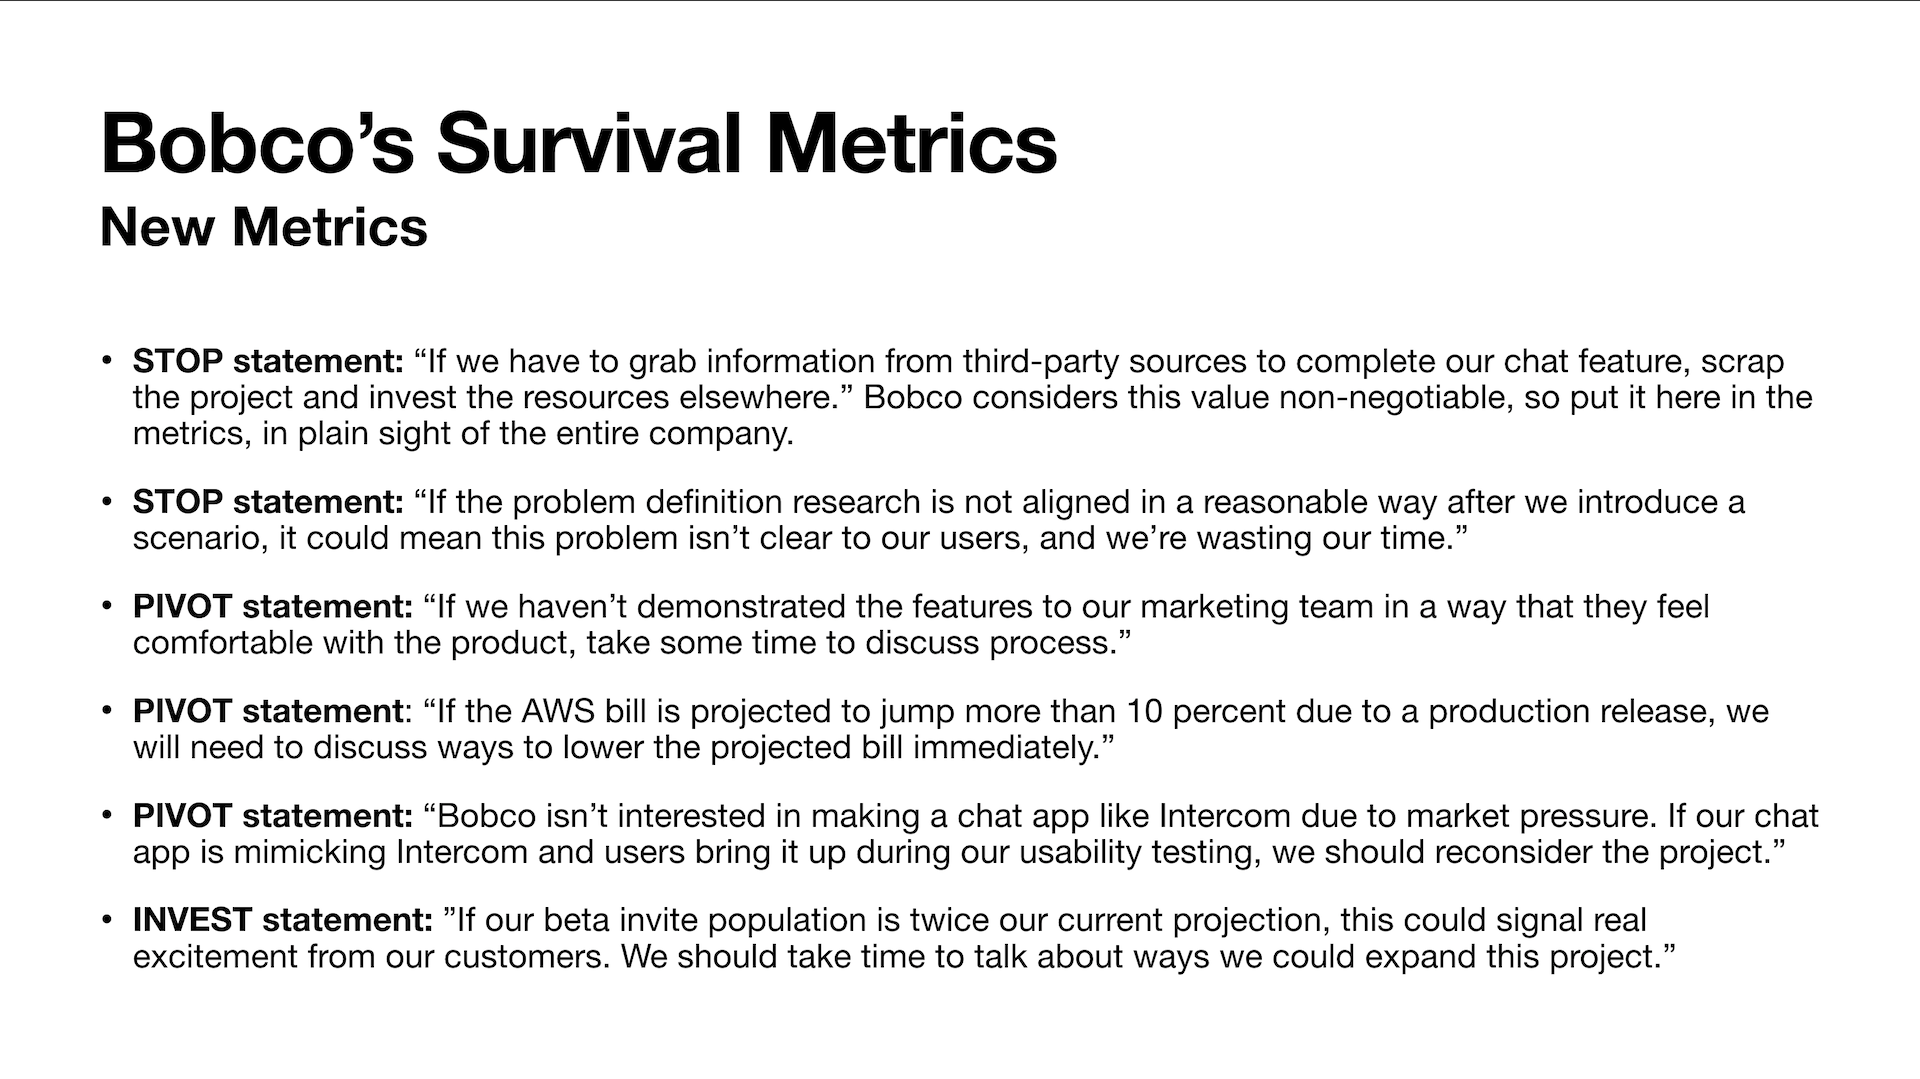 A series of stop, pivot, and investment statements to determine survival metrics.